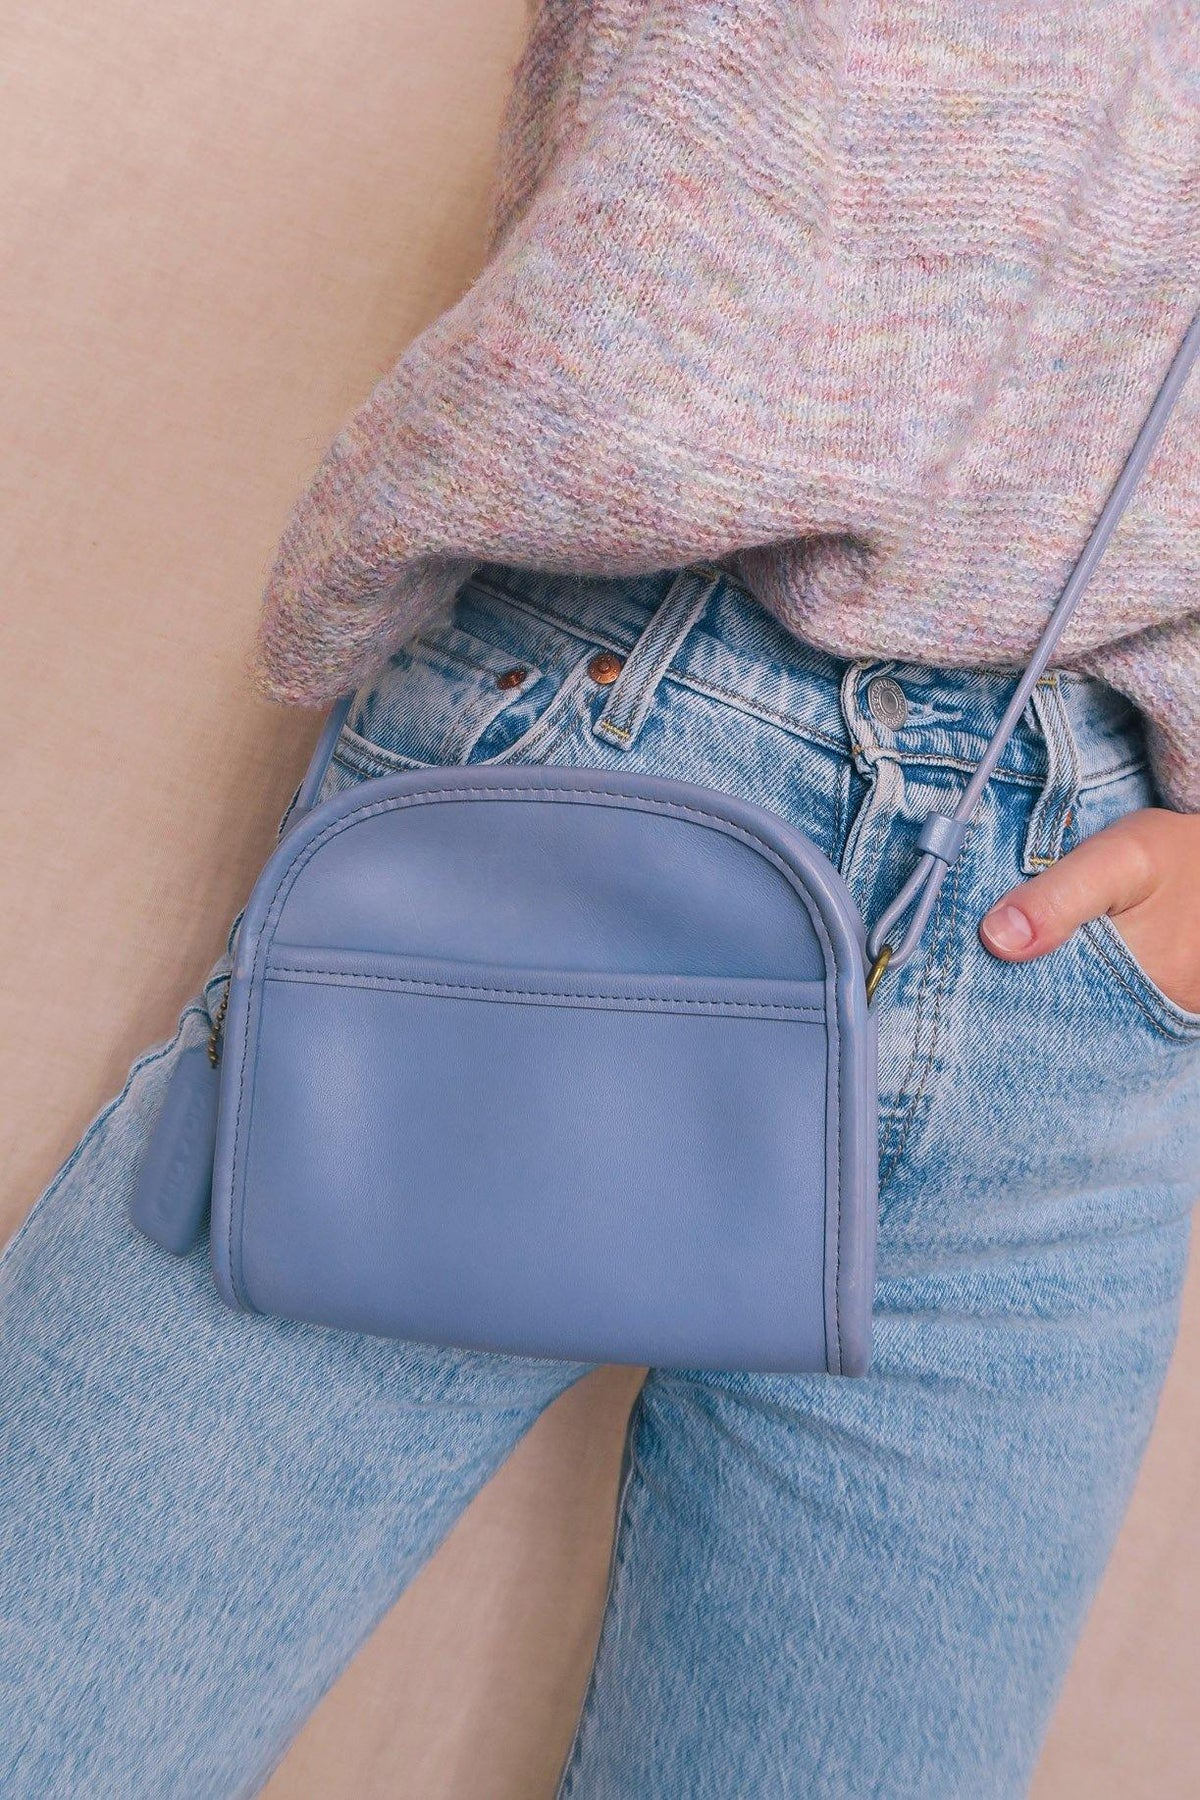 Vintage Coach Periwinkle Abbie Bag from Sweet and Spark